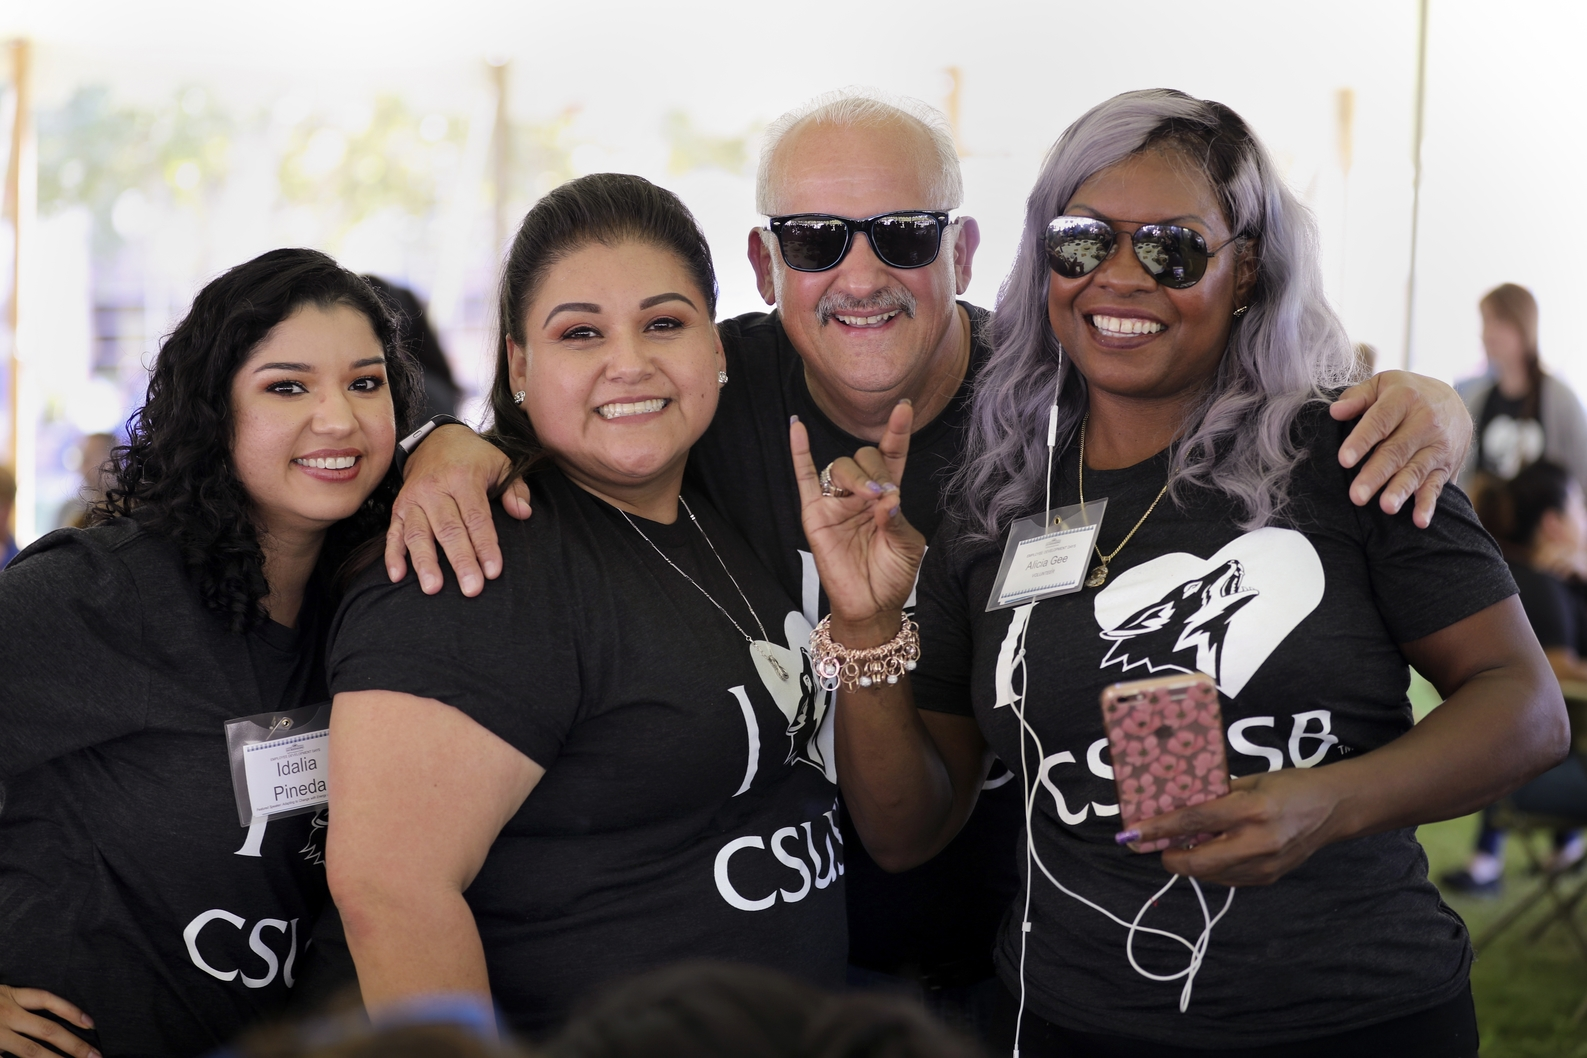 Counselors posing with CSUSB President.